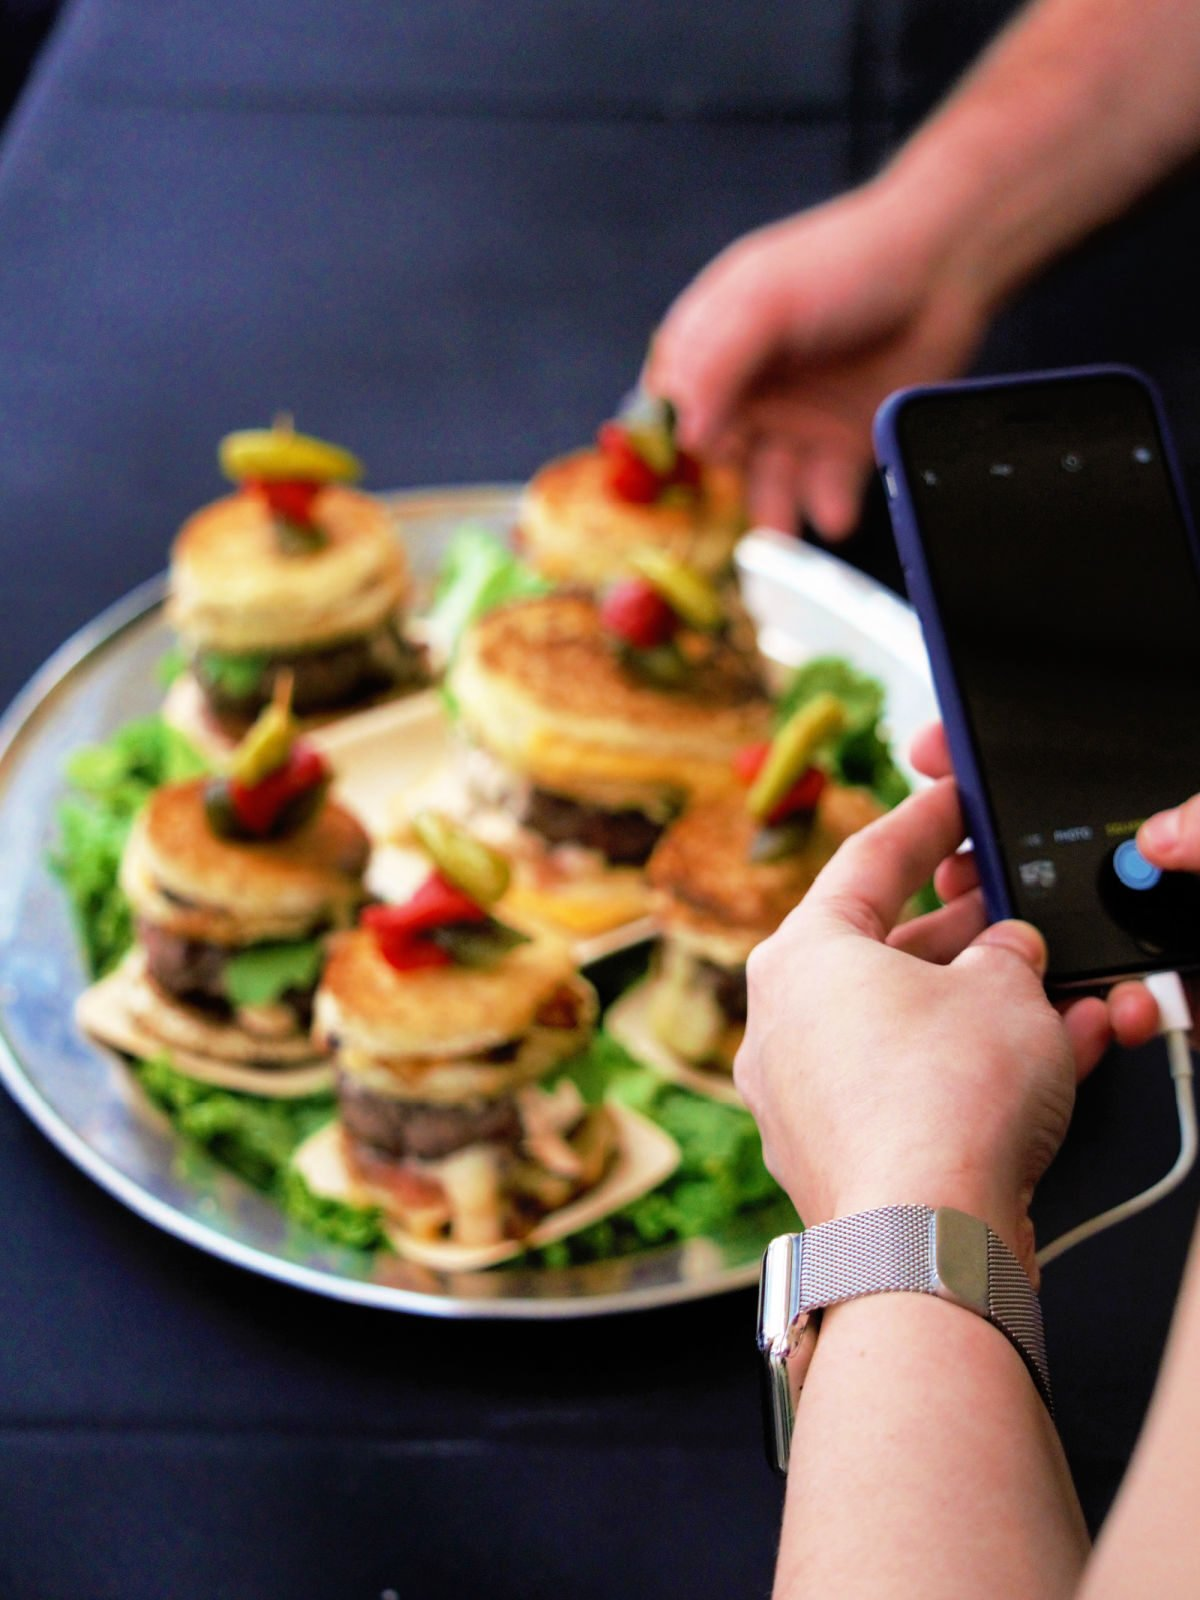 Person taking a photo with a phone of hamburgers.